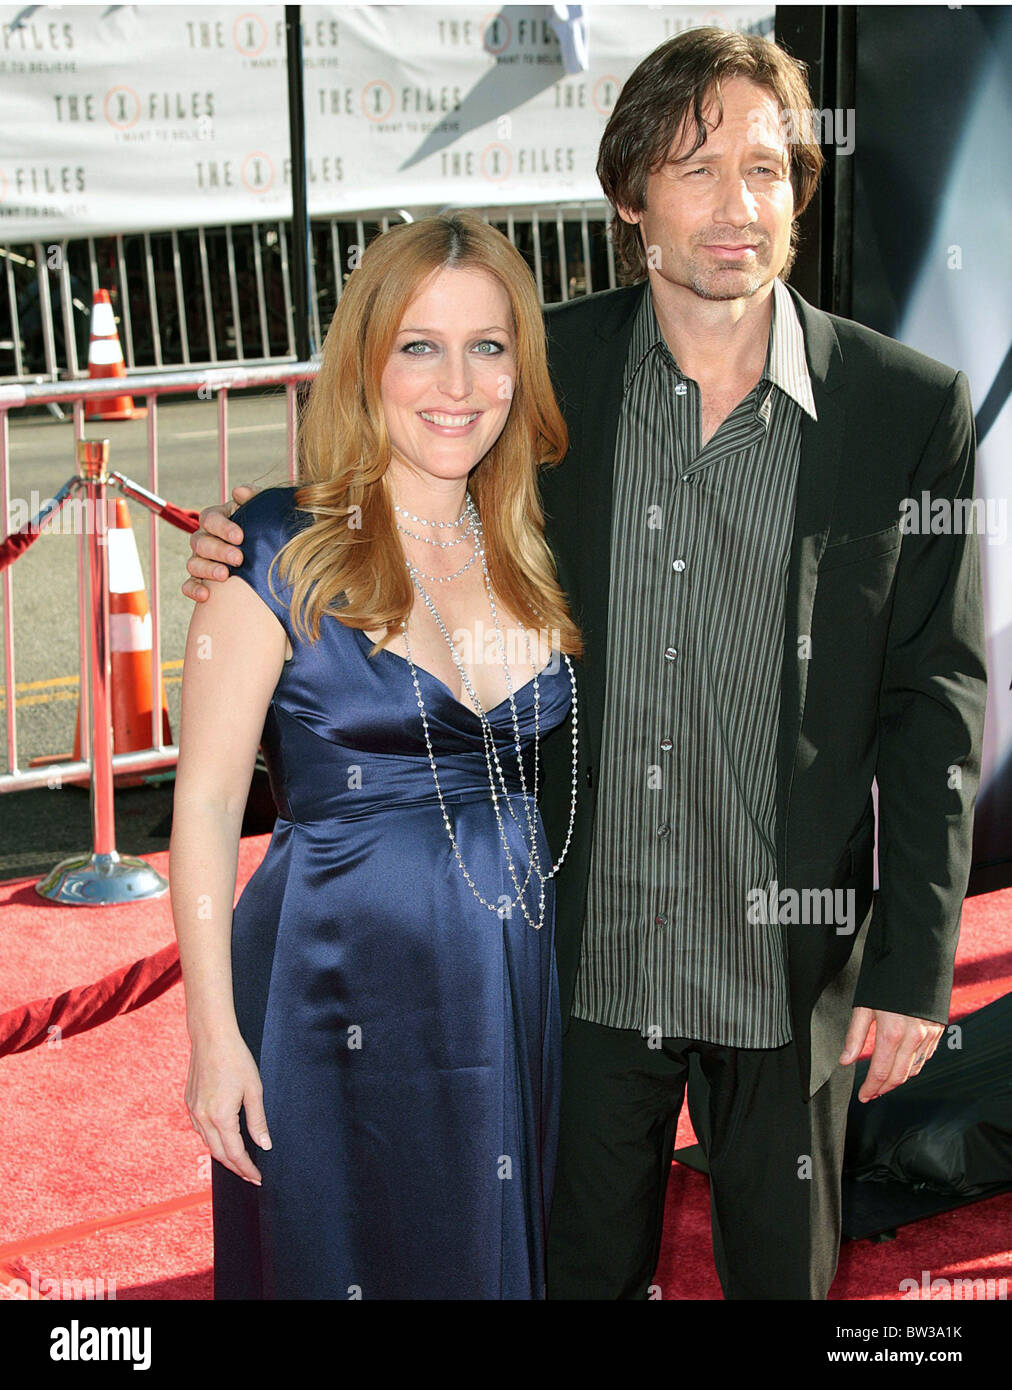 THE X-FILES: I WANT TO BELIEVE Premiere - Stock Image